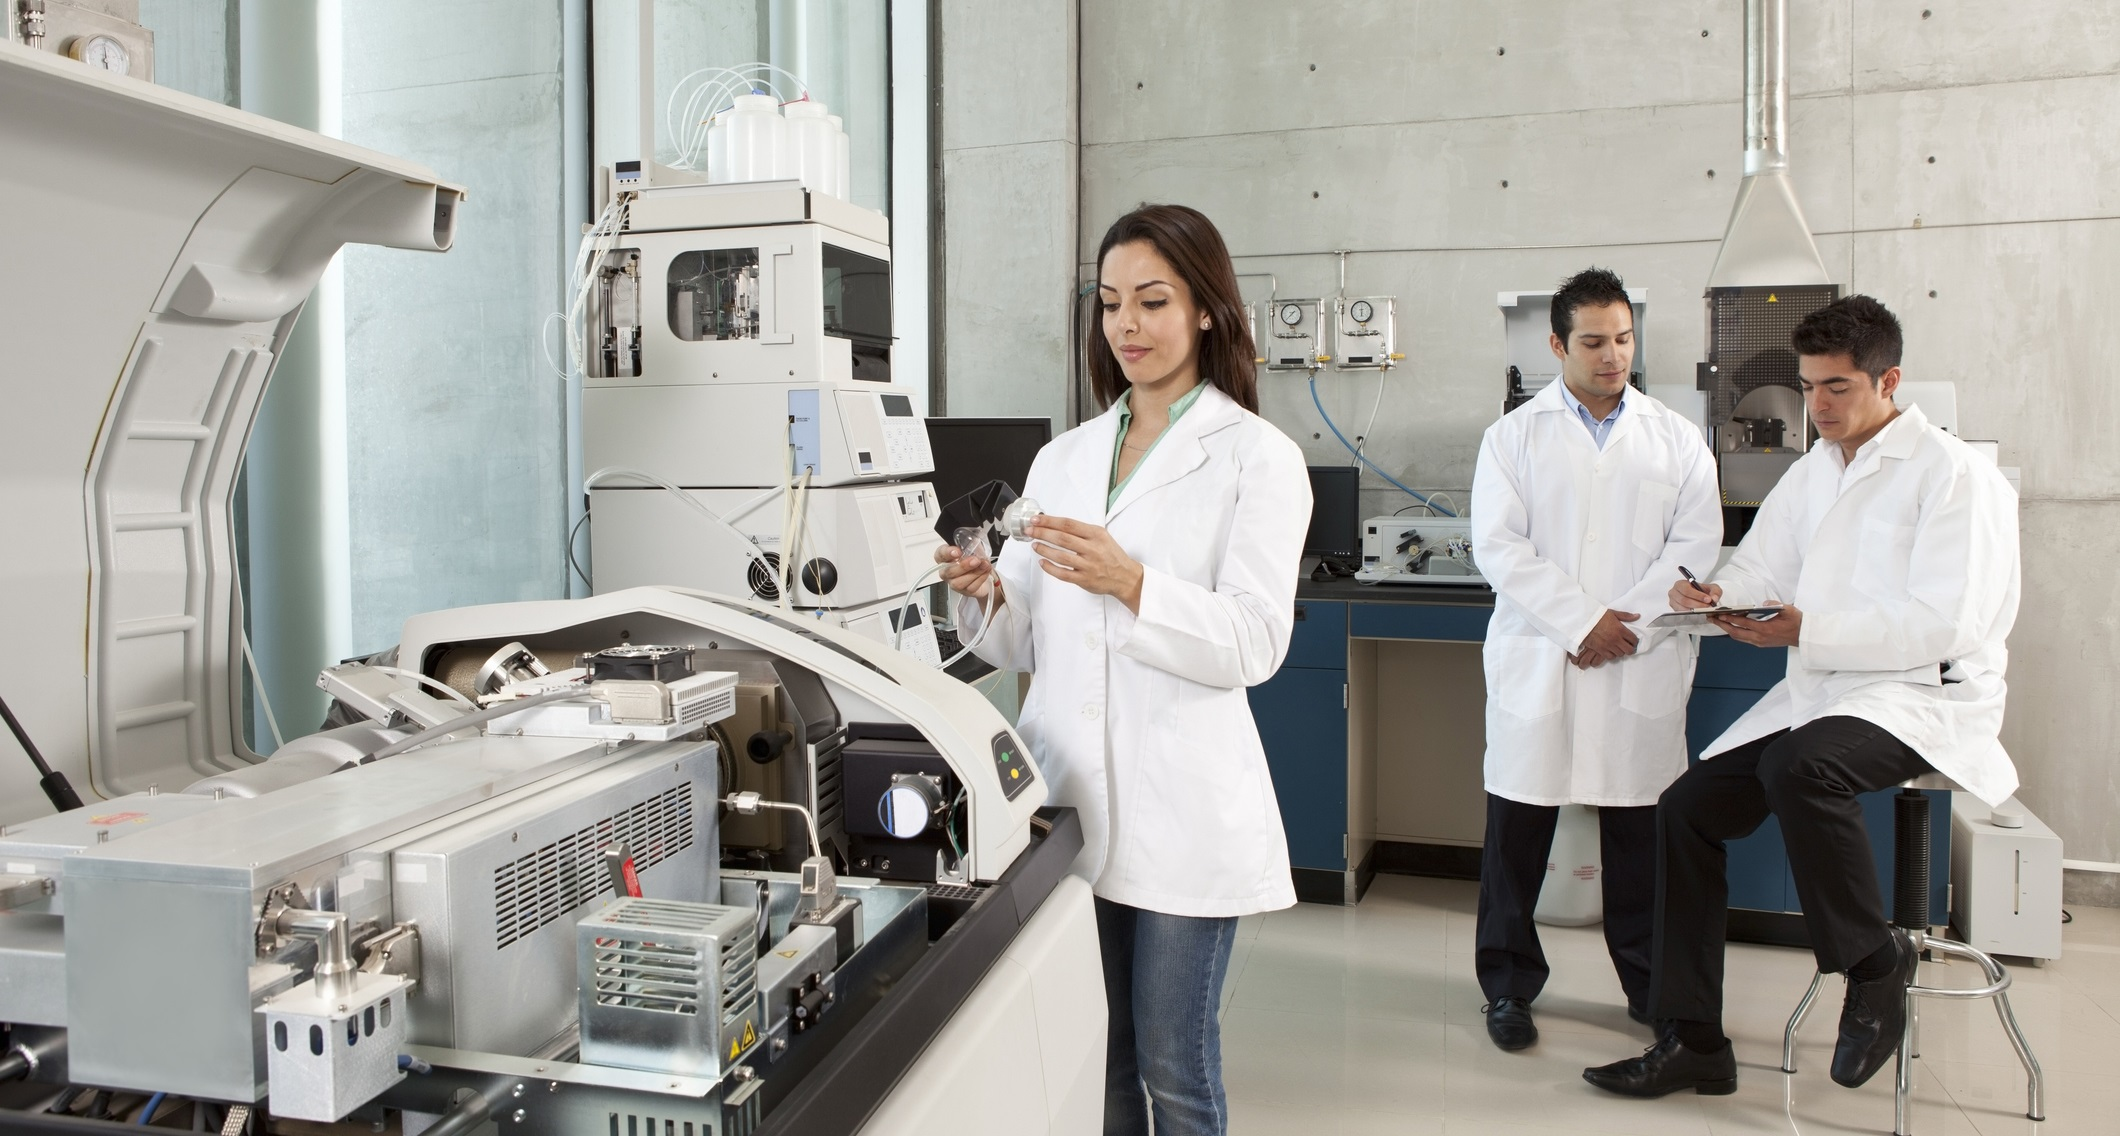 Mass Spectrometry Roundup: Liquid Chromatography Tandem Mass Spectrometry (LC-MS/MS)